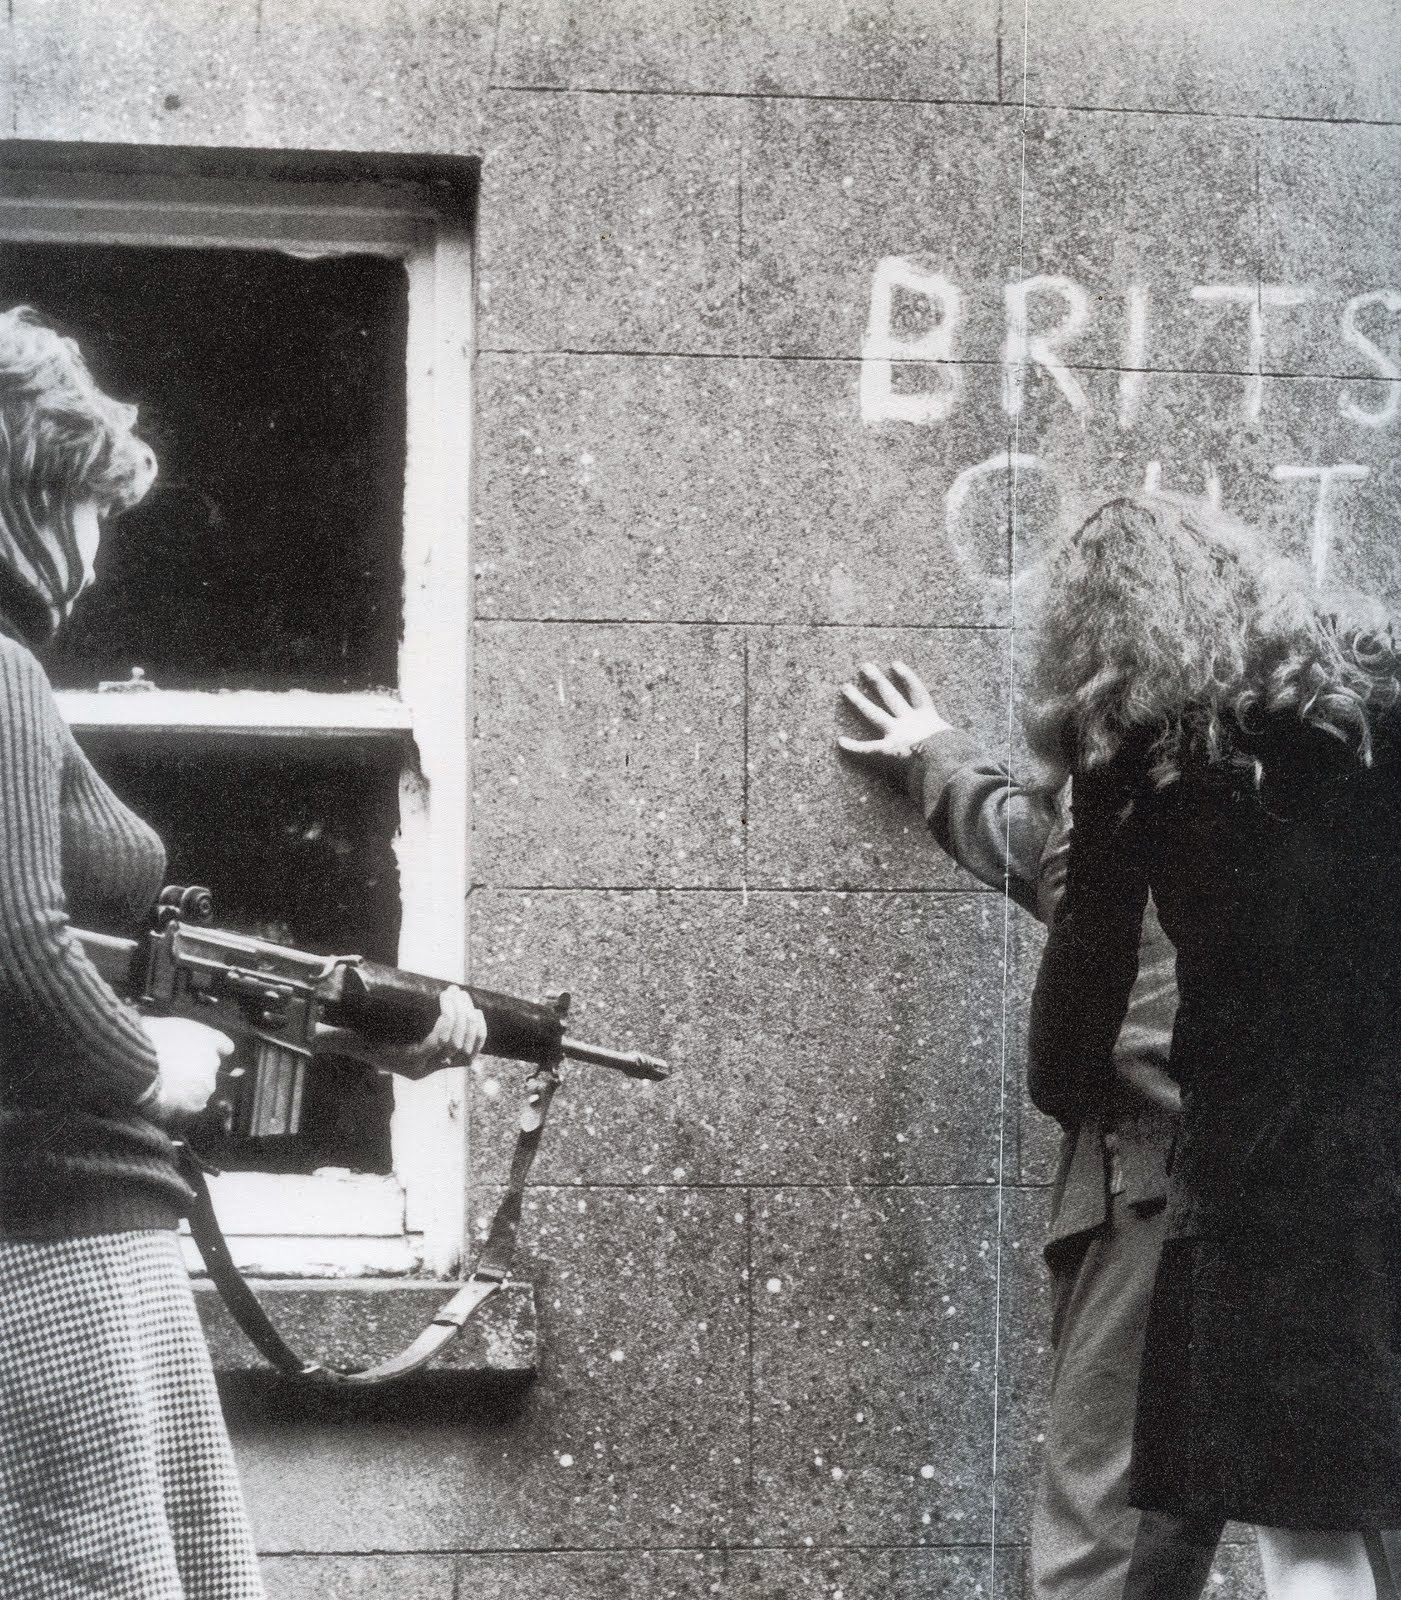 an analysis of the troubles facing the irish republican army 1 exploring the form and function of dissident irish republican online discourses lorraine bowman-grieve university of lincoln, uk  maura conway dublin city.